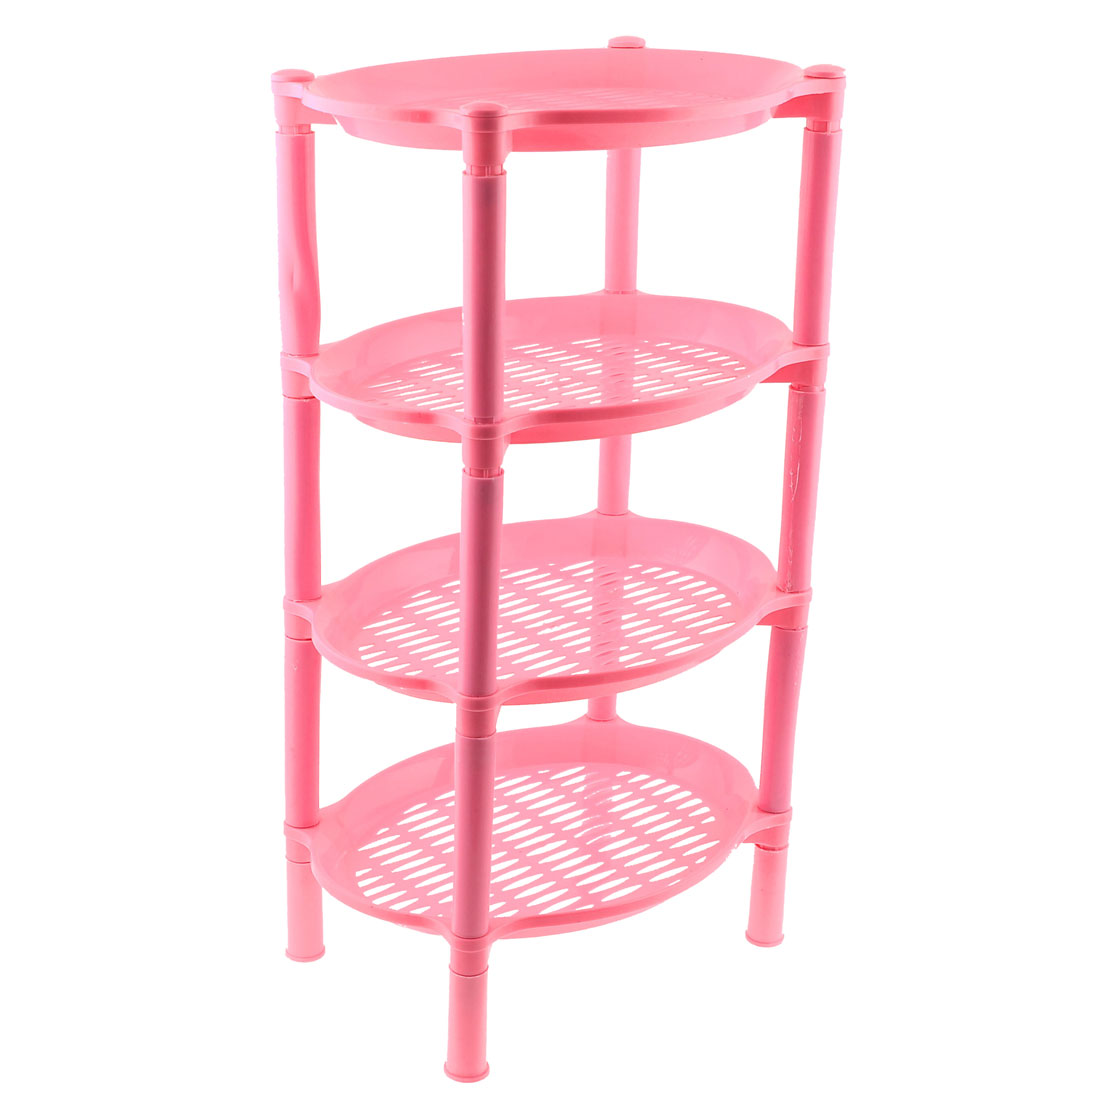 "20"" High Detachable Oval Shape Pink Plastic Mini Storage Shelf Rack"